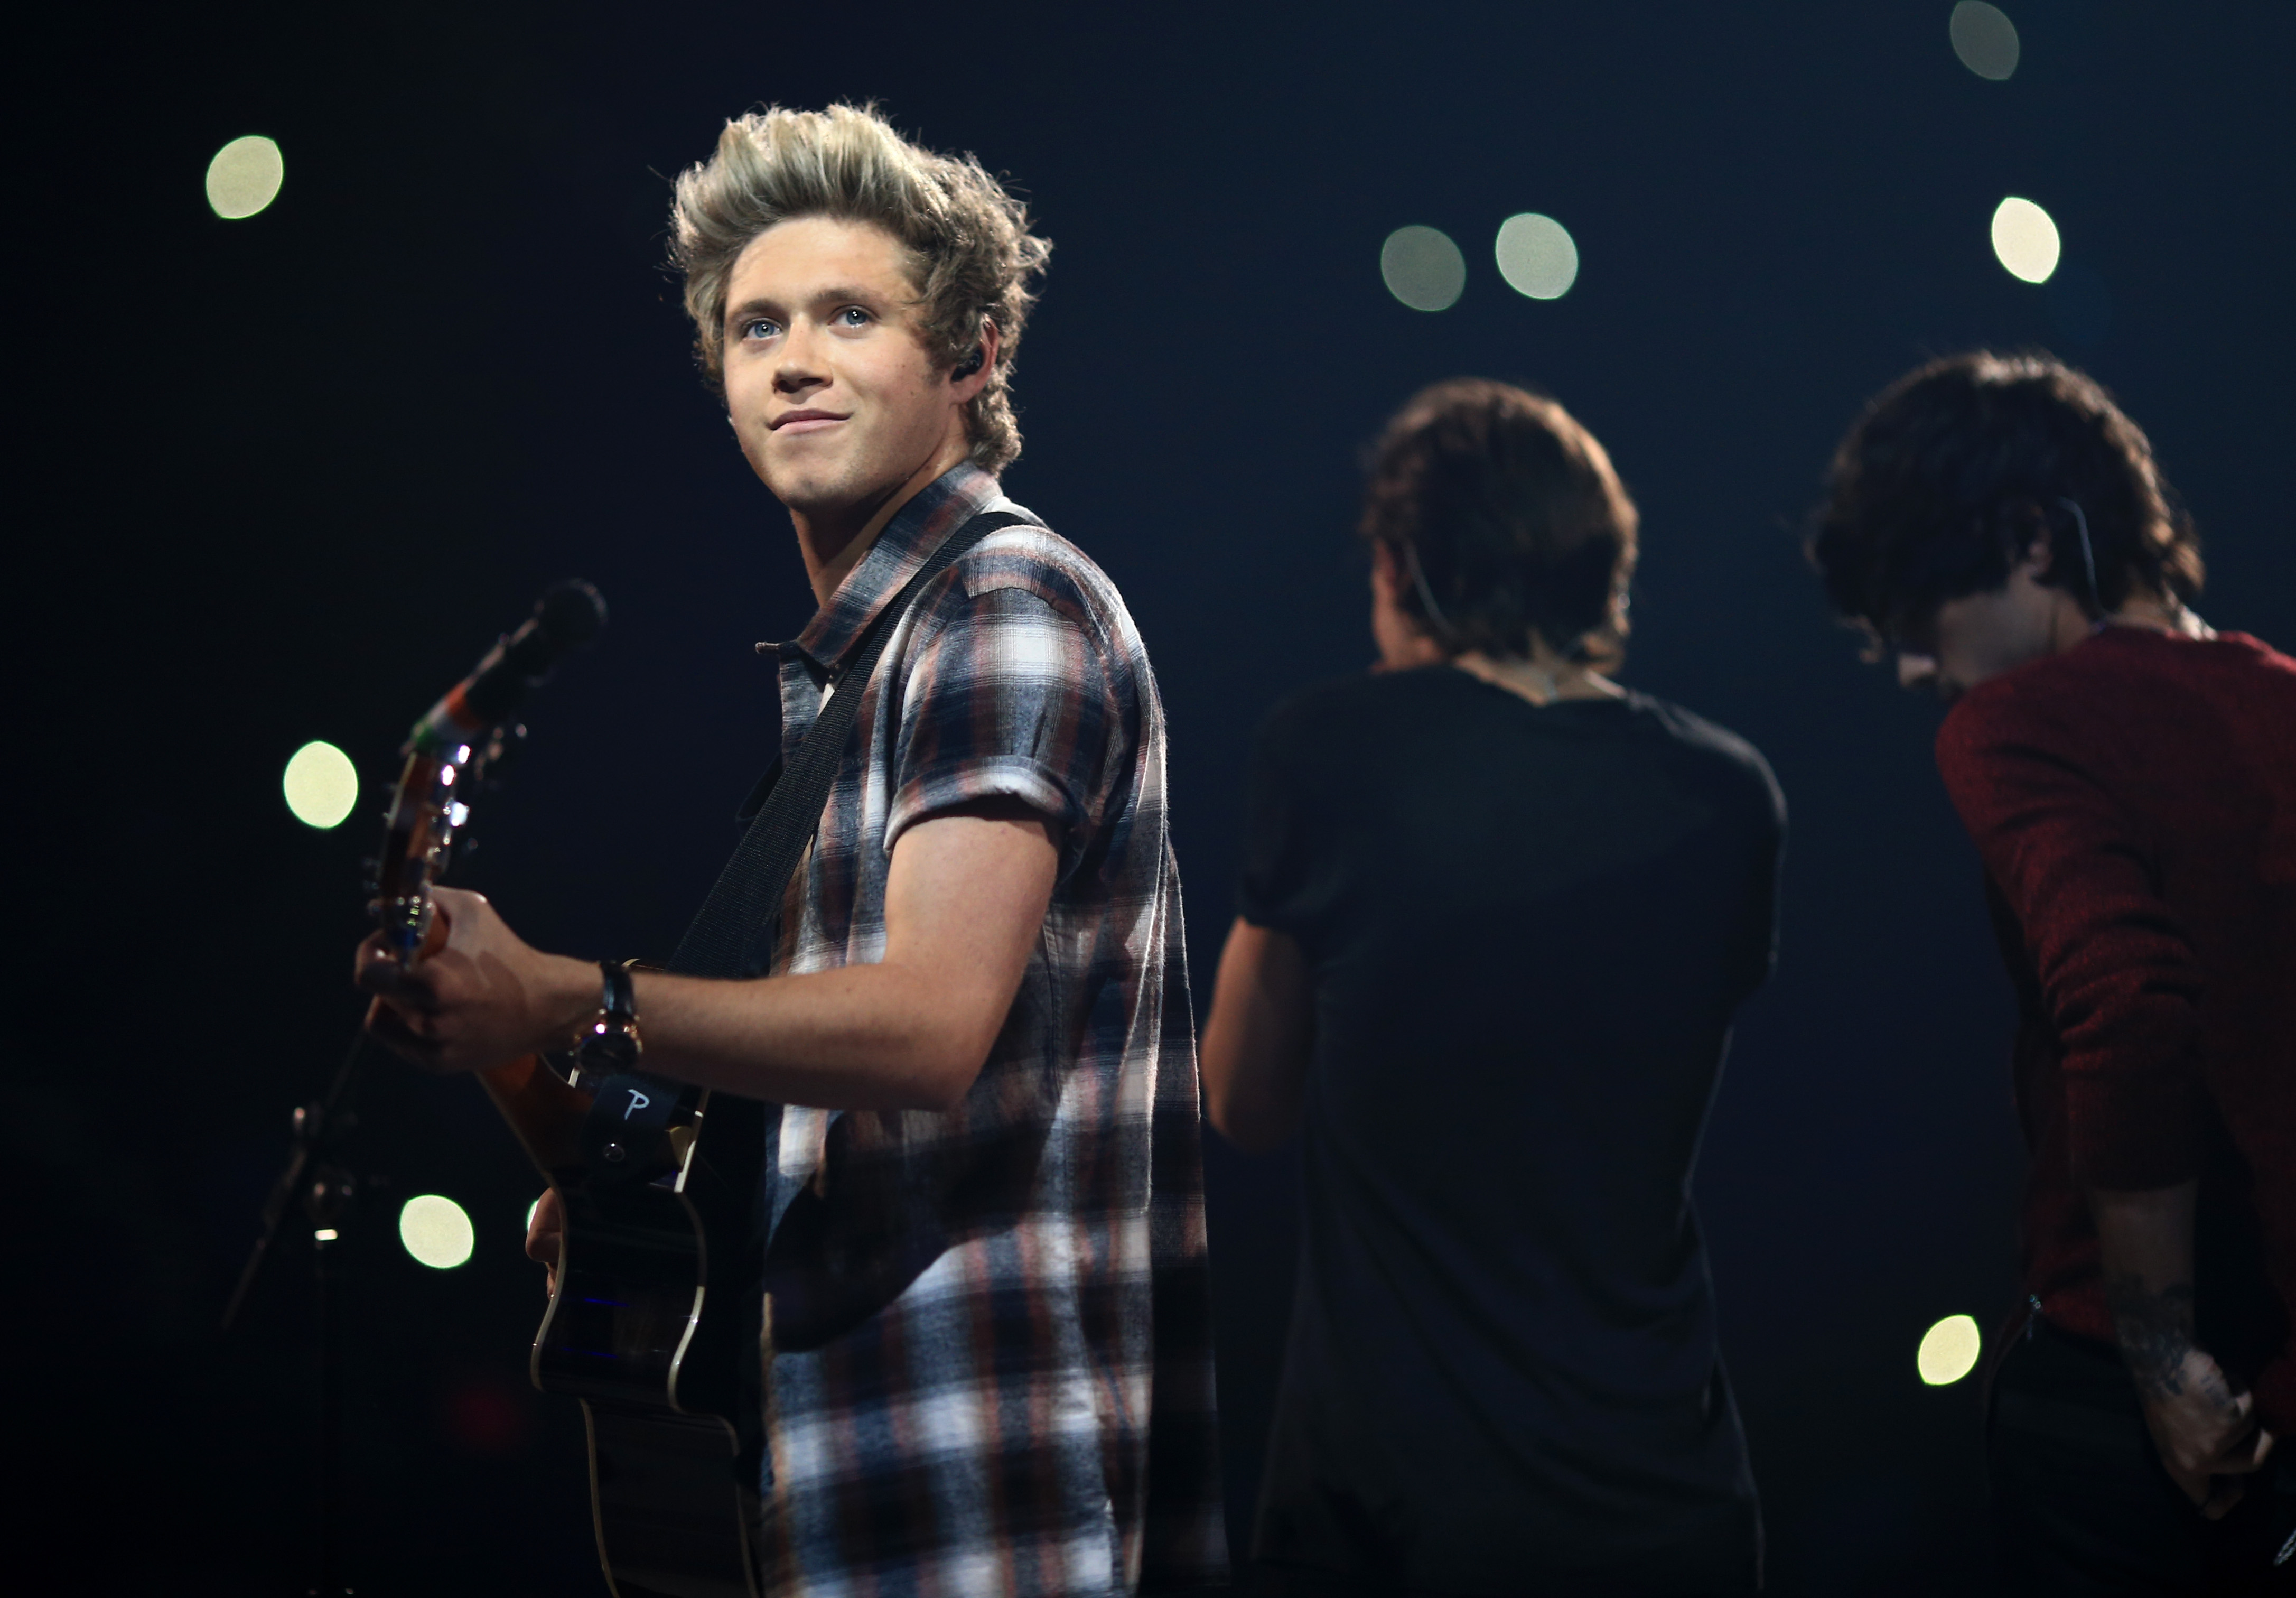 Awkward moment Niall Horan is told 'no one really cares' about him by fan on radio show